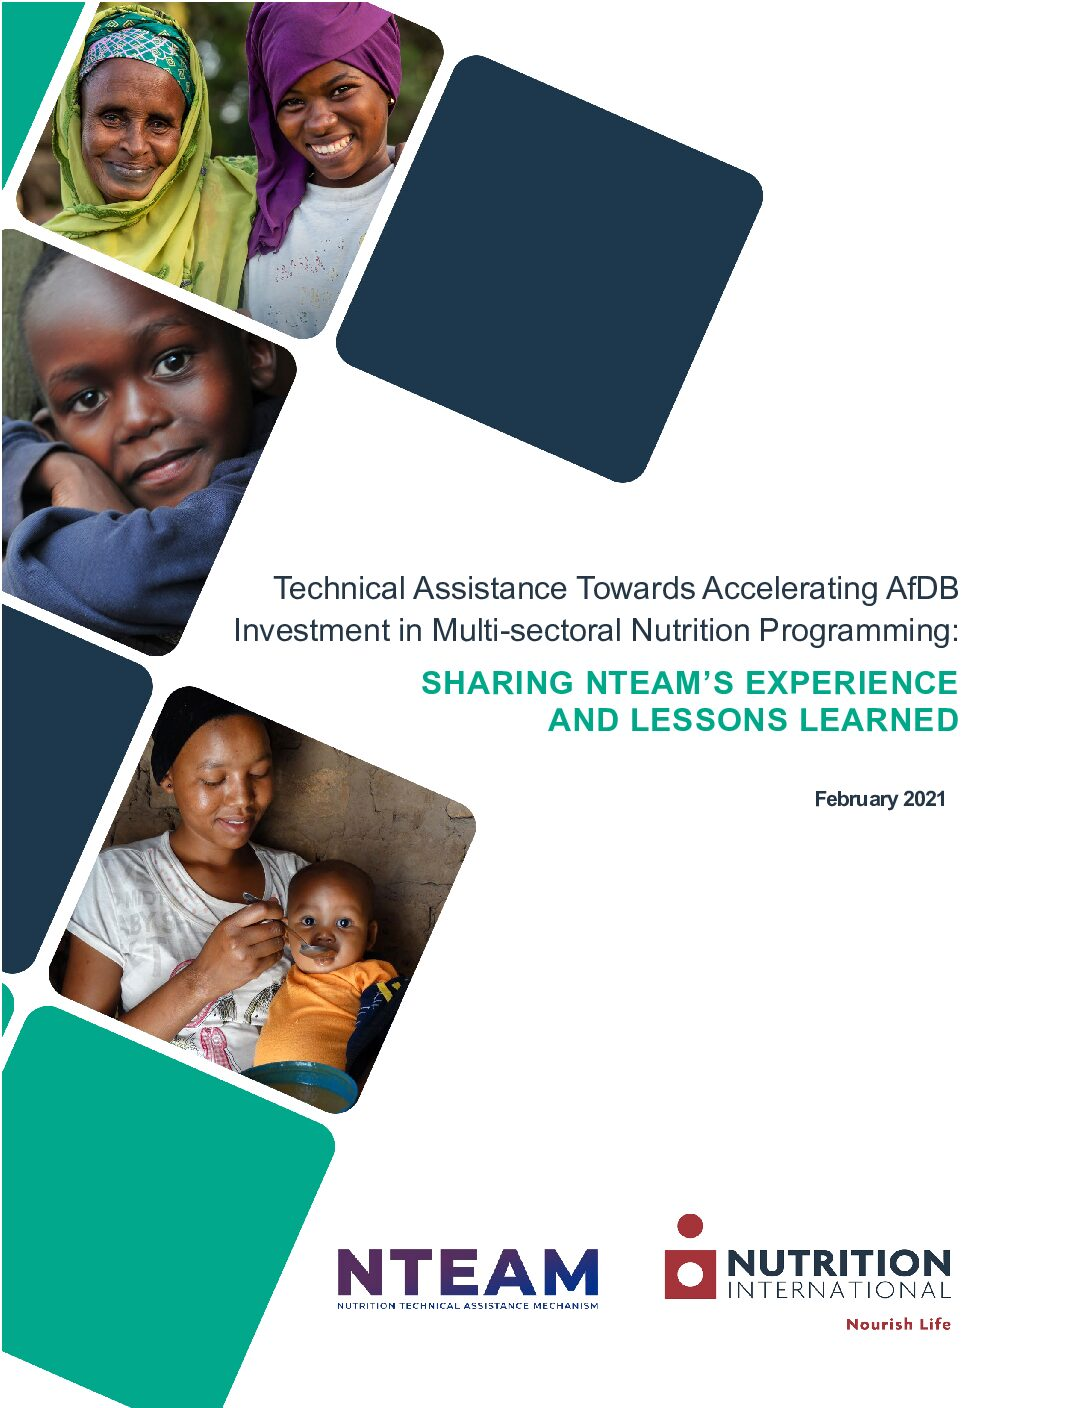 Technical Assistance Towards Accelerating AfDB Investment in Multi-sectoral Nutrition Programming: Sharing NTEAM'S Experience and Lessons Learned thumbnail